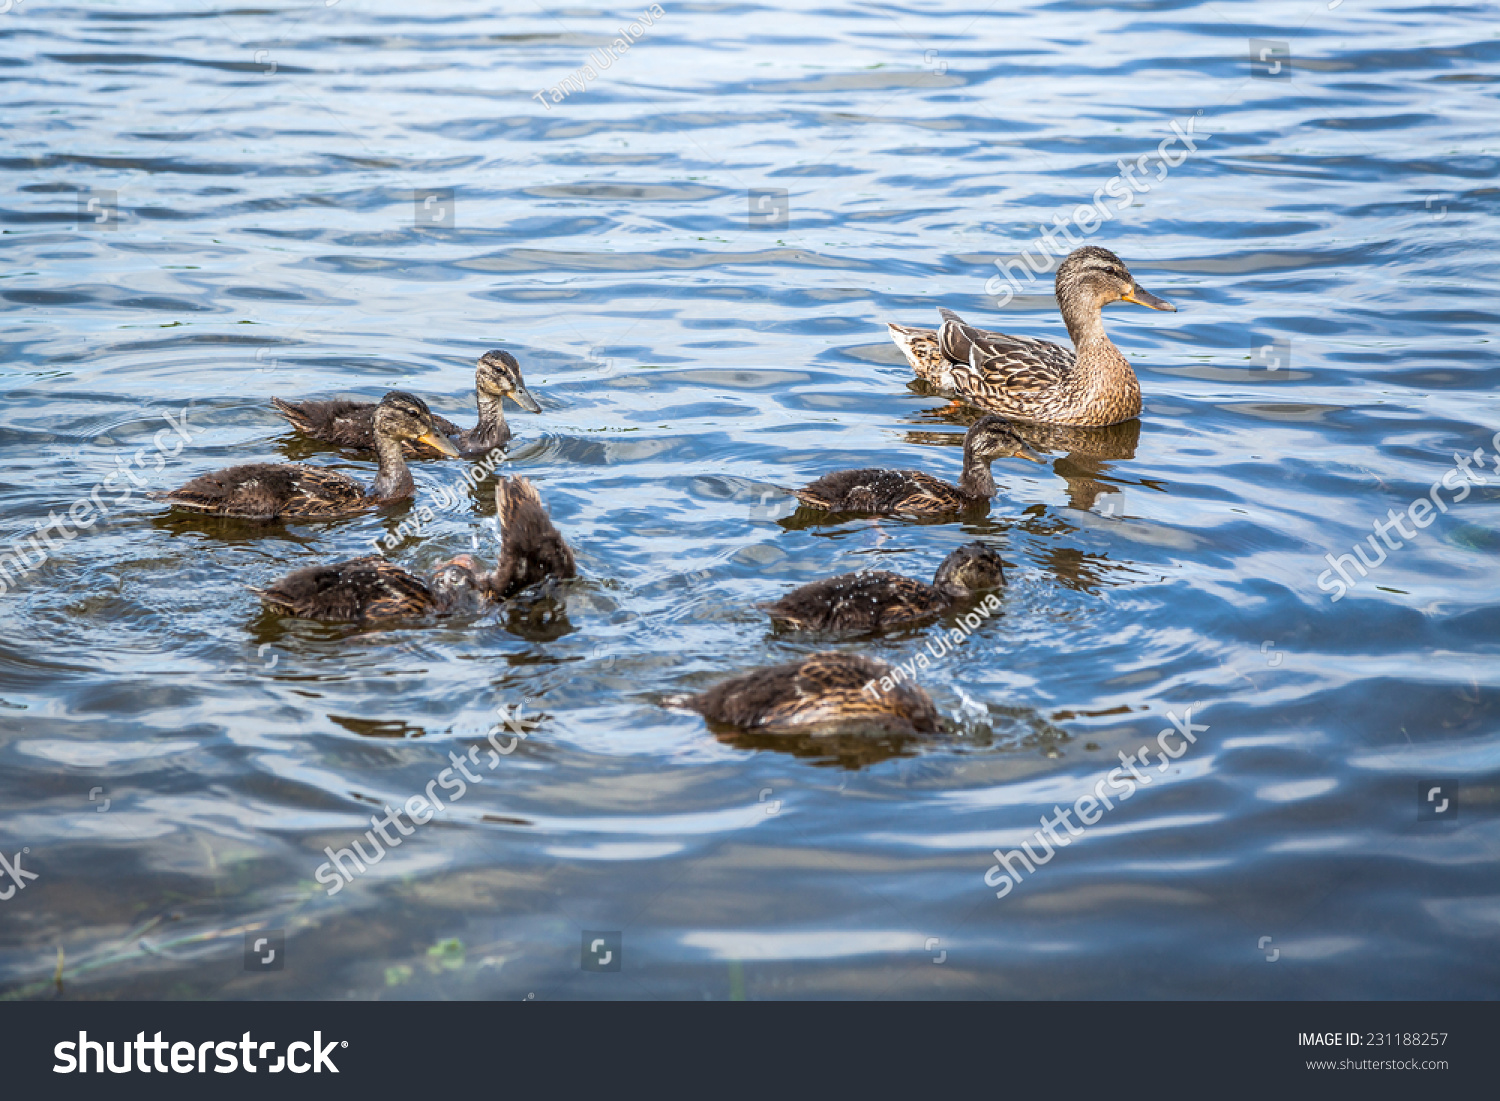 Female Duck With Offspring Swimming In The River Stock ...